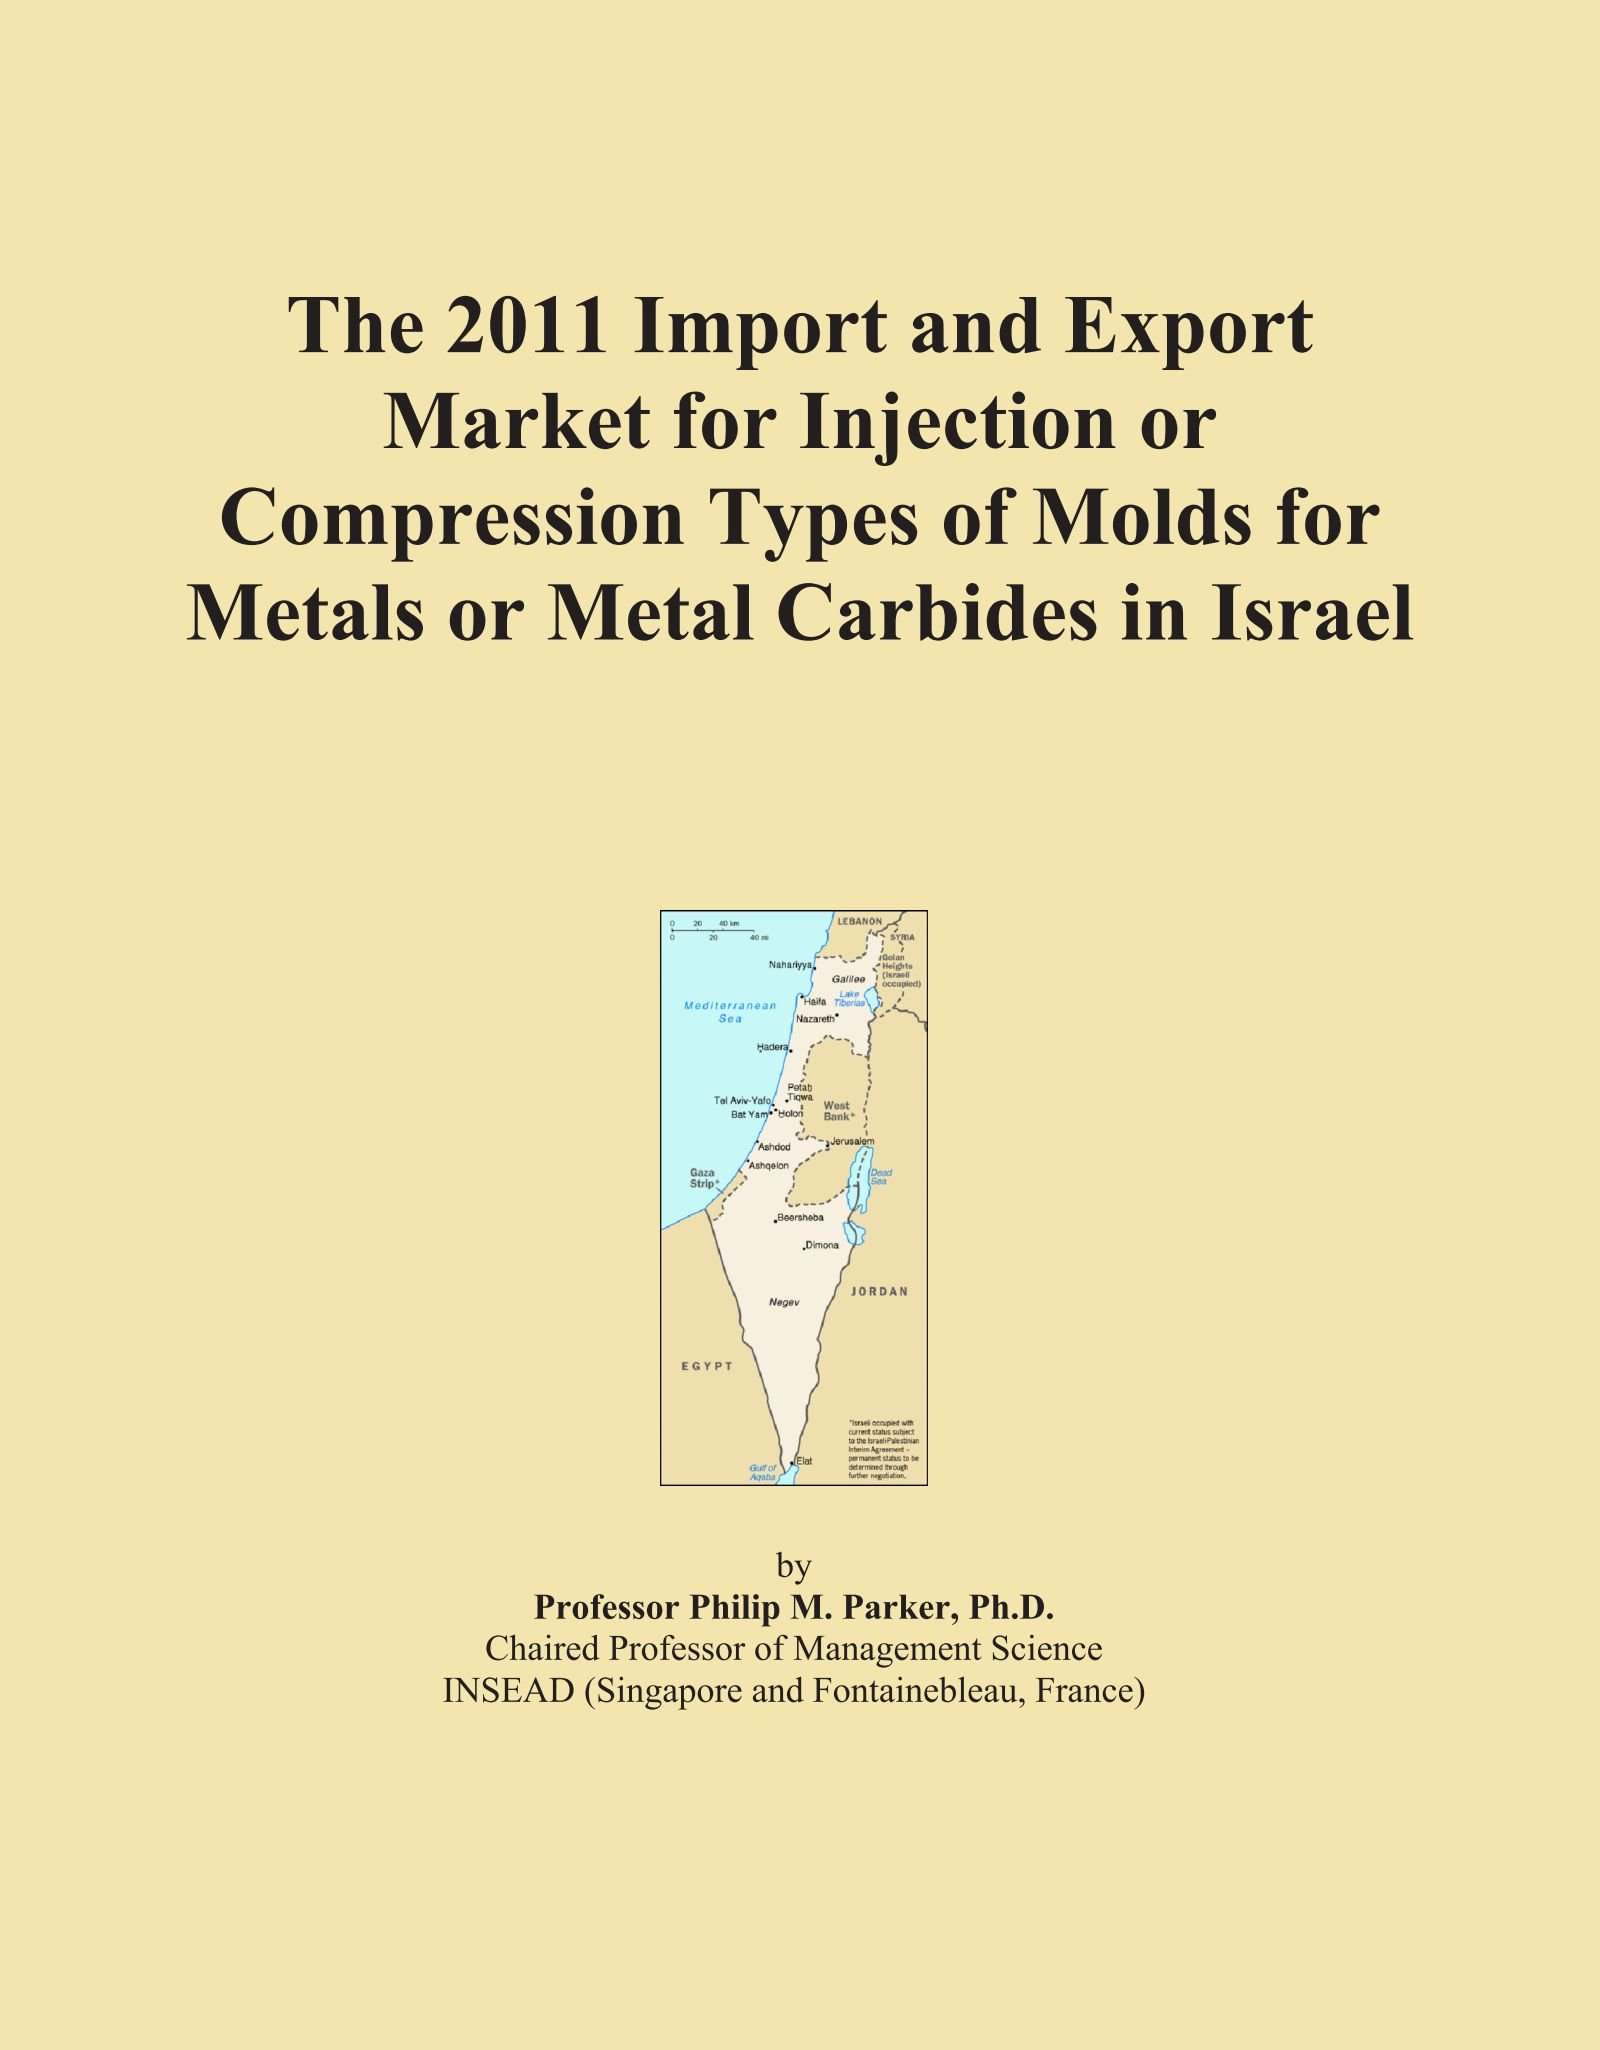 The 2011 Import and Export Market for Injection or Compression Types of Molds for Metals or Metal Carbides in Israel pdf